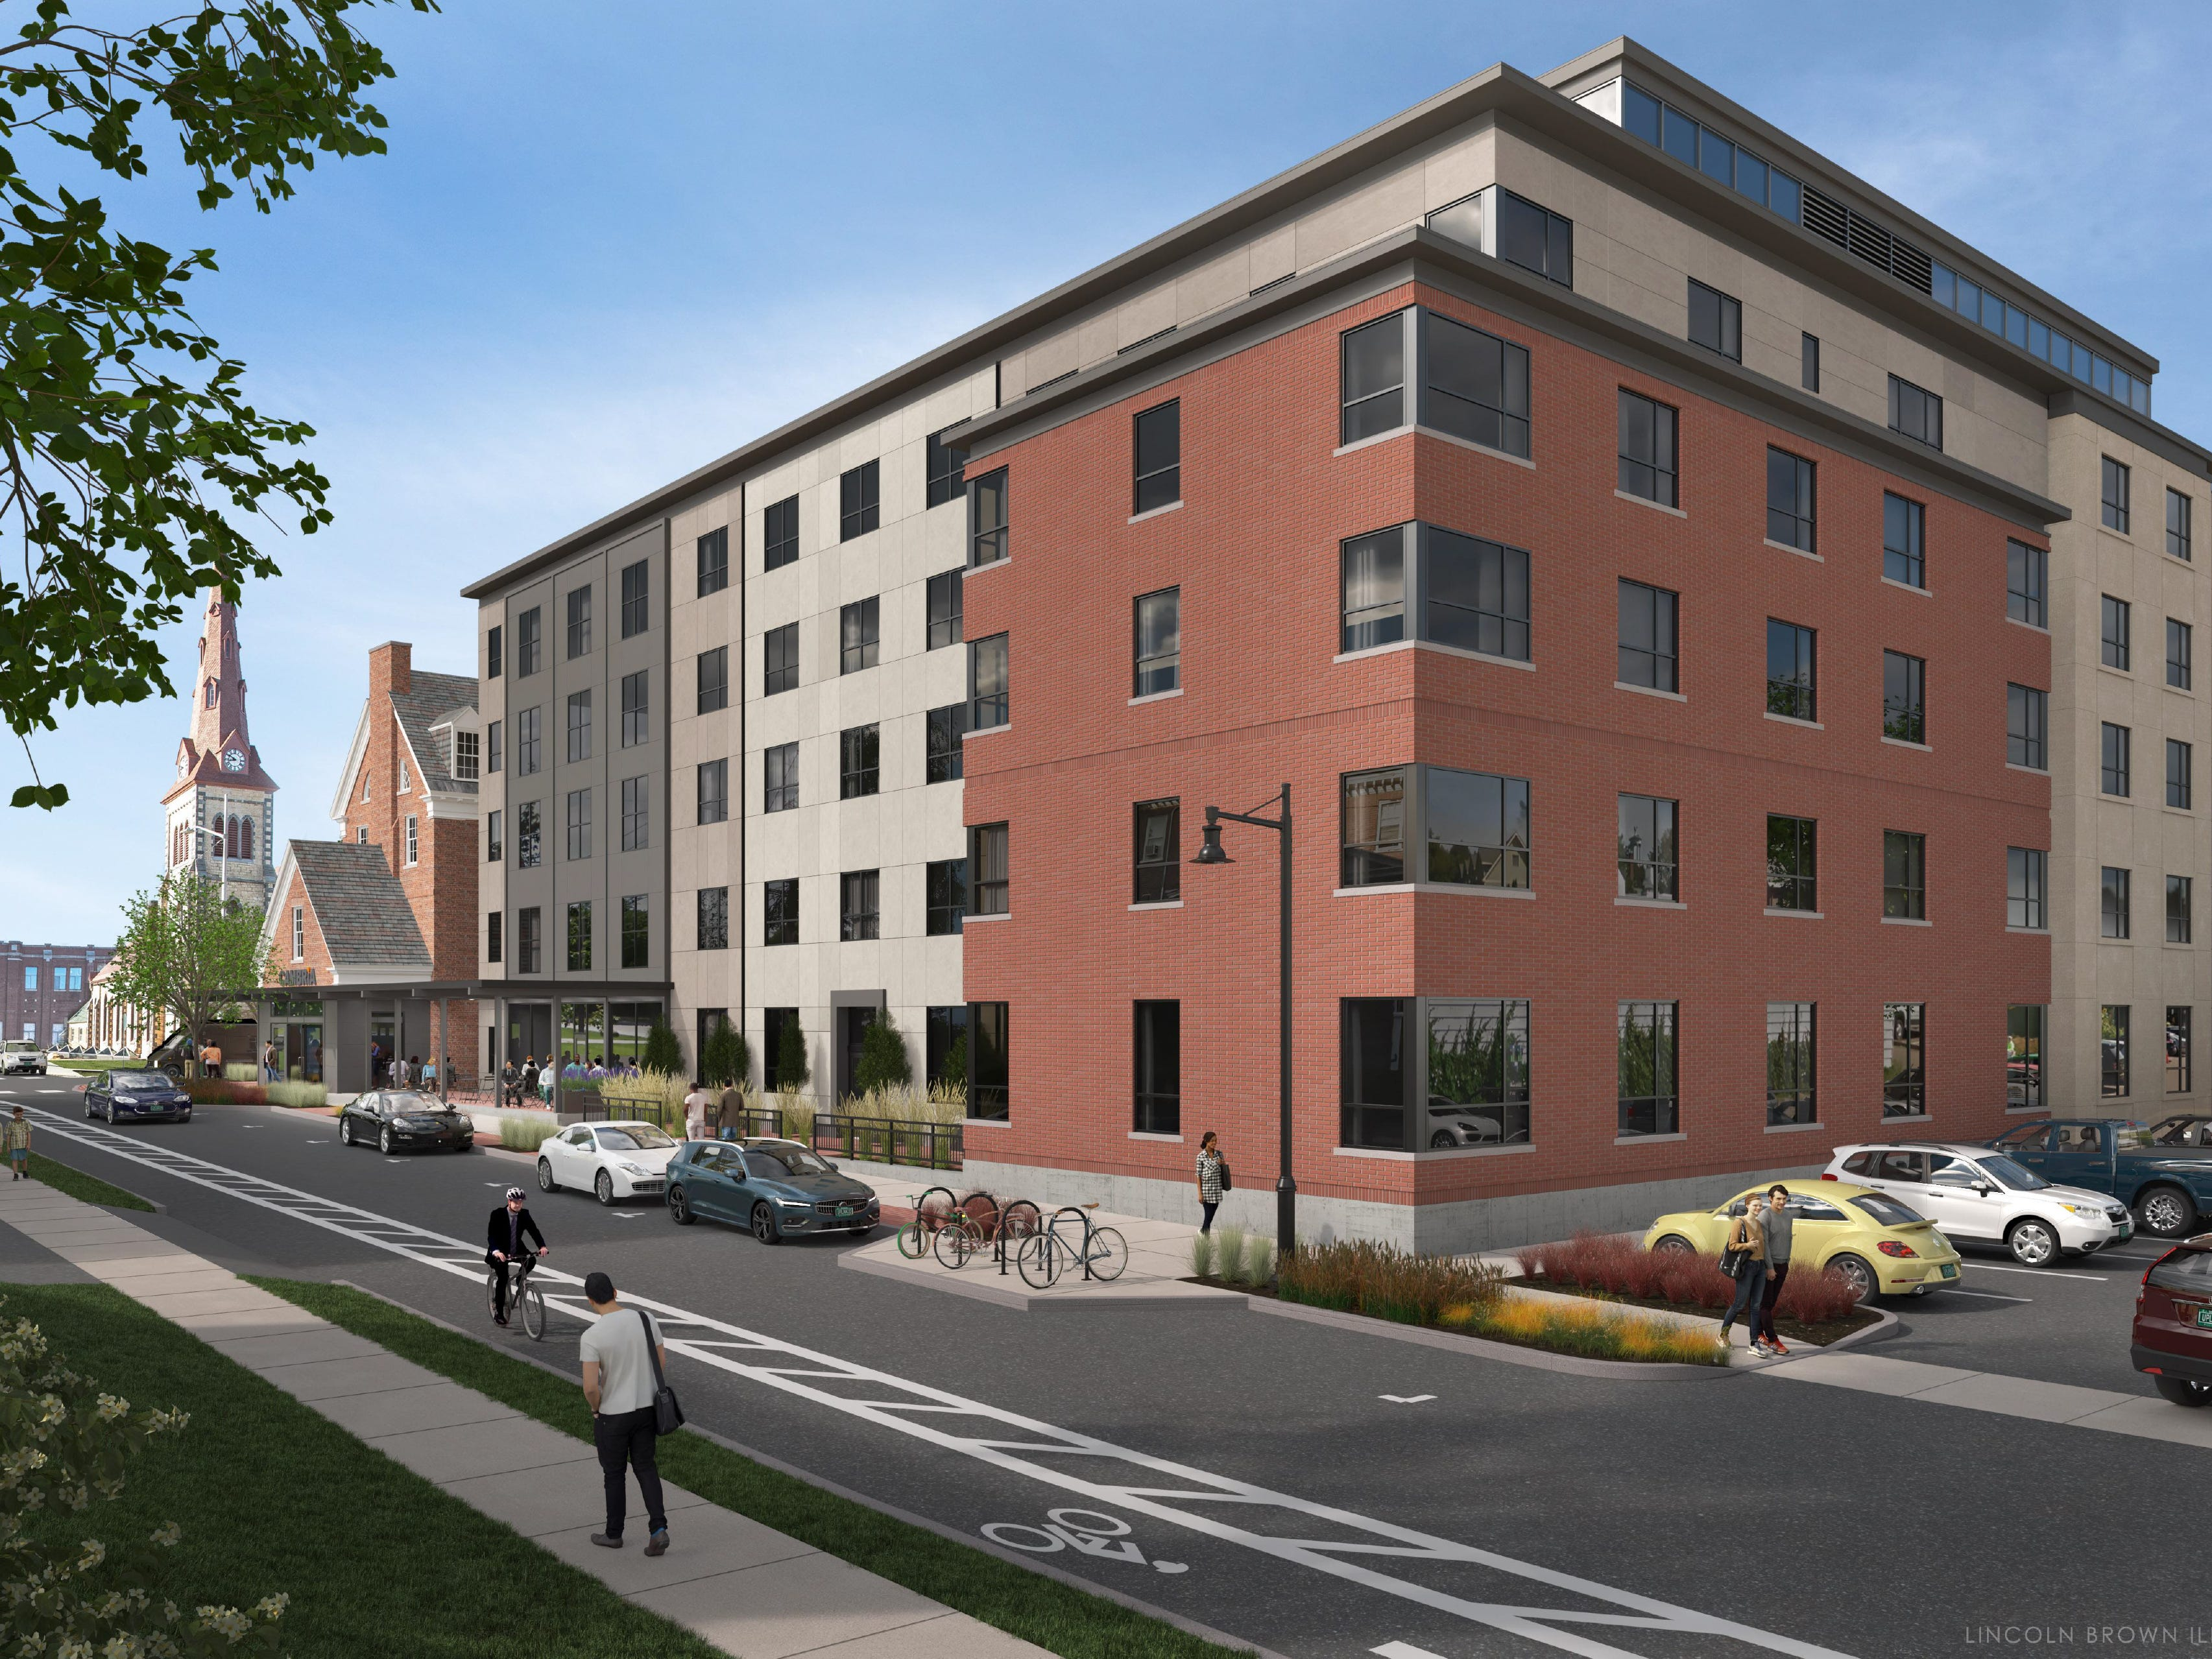 Proposed: a 142-room hotel at the historic downtown YMCA in Burlington. This illustration created by Lincoln Brown in early 2019 is a view of the project from South Union Street, looking south toward College Street.